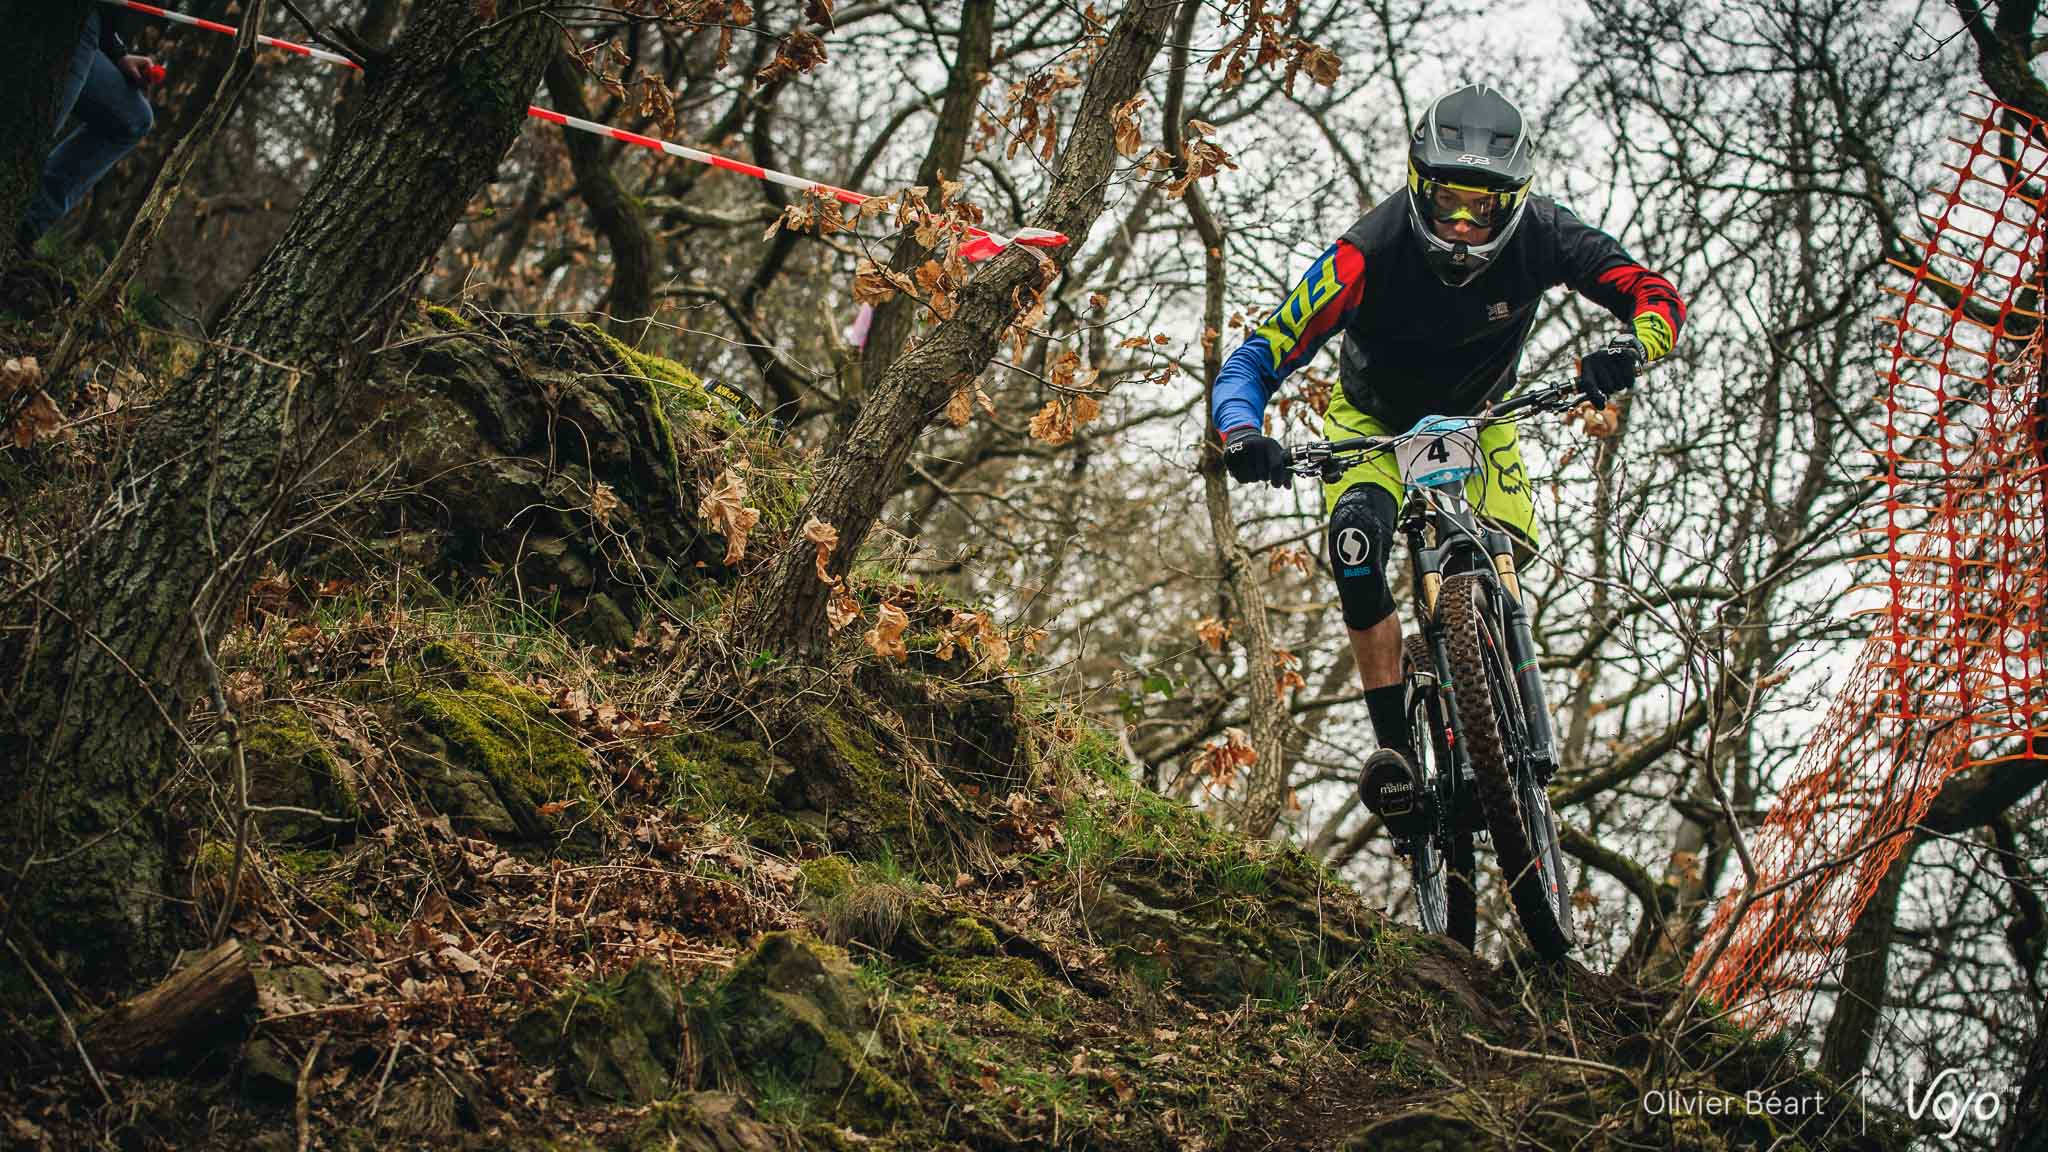 Belgian_Enduro_Cup_Chaudfontaine_2016_Copyright_OBeart_Vojomag-14